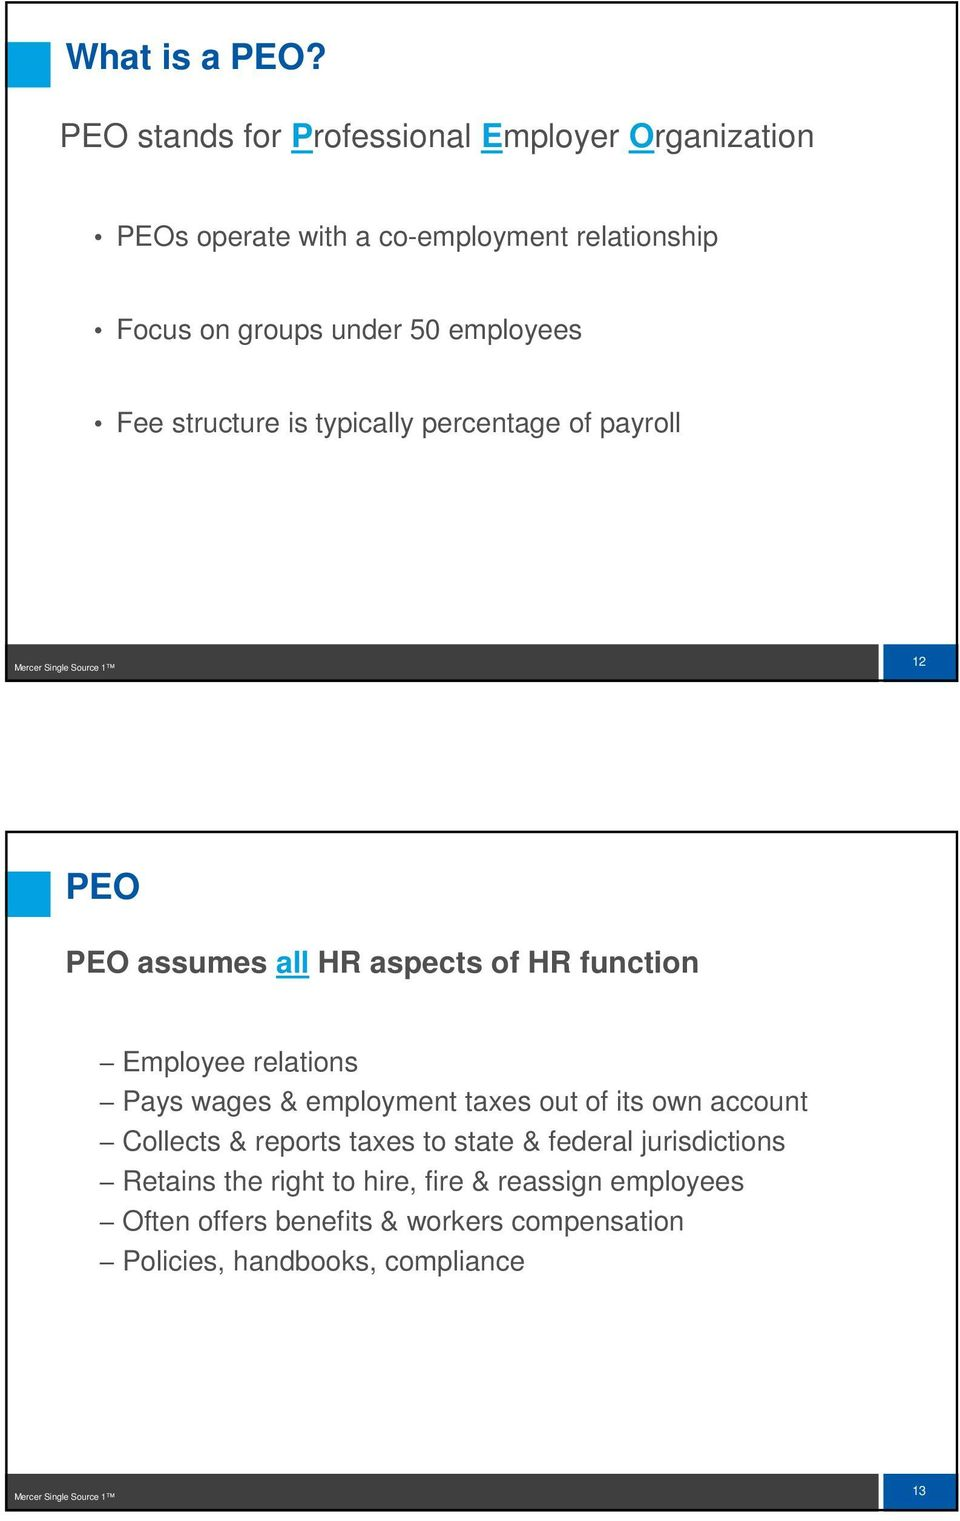 structure is typically percentage of payroll Mercer Single Source 1 12 PEO PEO assumes all HR aspects of HR function Employee relations